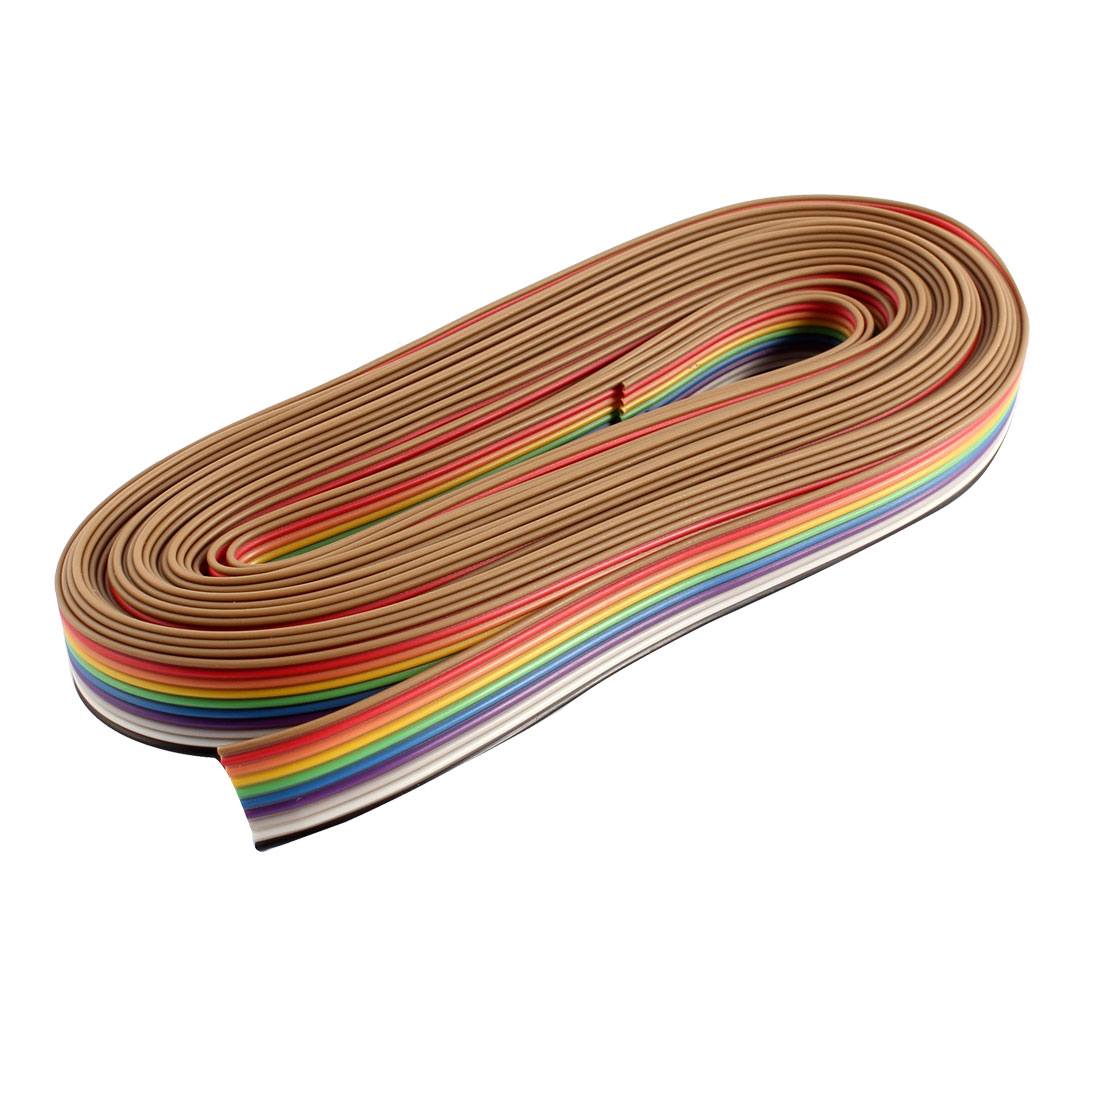 uxcell IDC 16 Pins Wire Flat Rainbow Ribbon Cable 48cm 2.54mm Pitch 1pcs